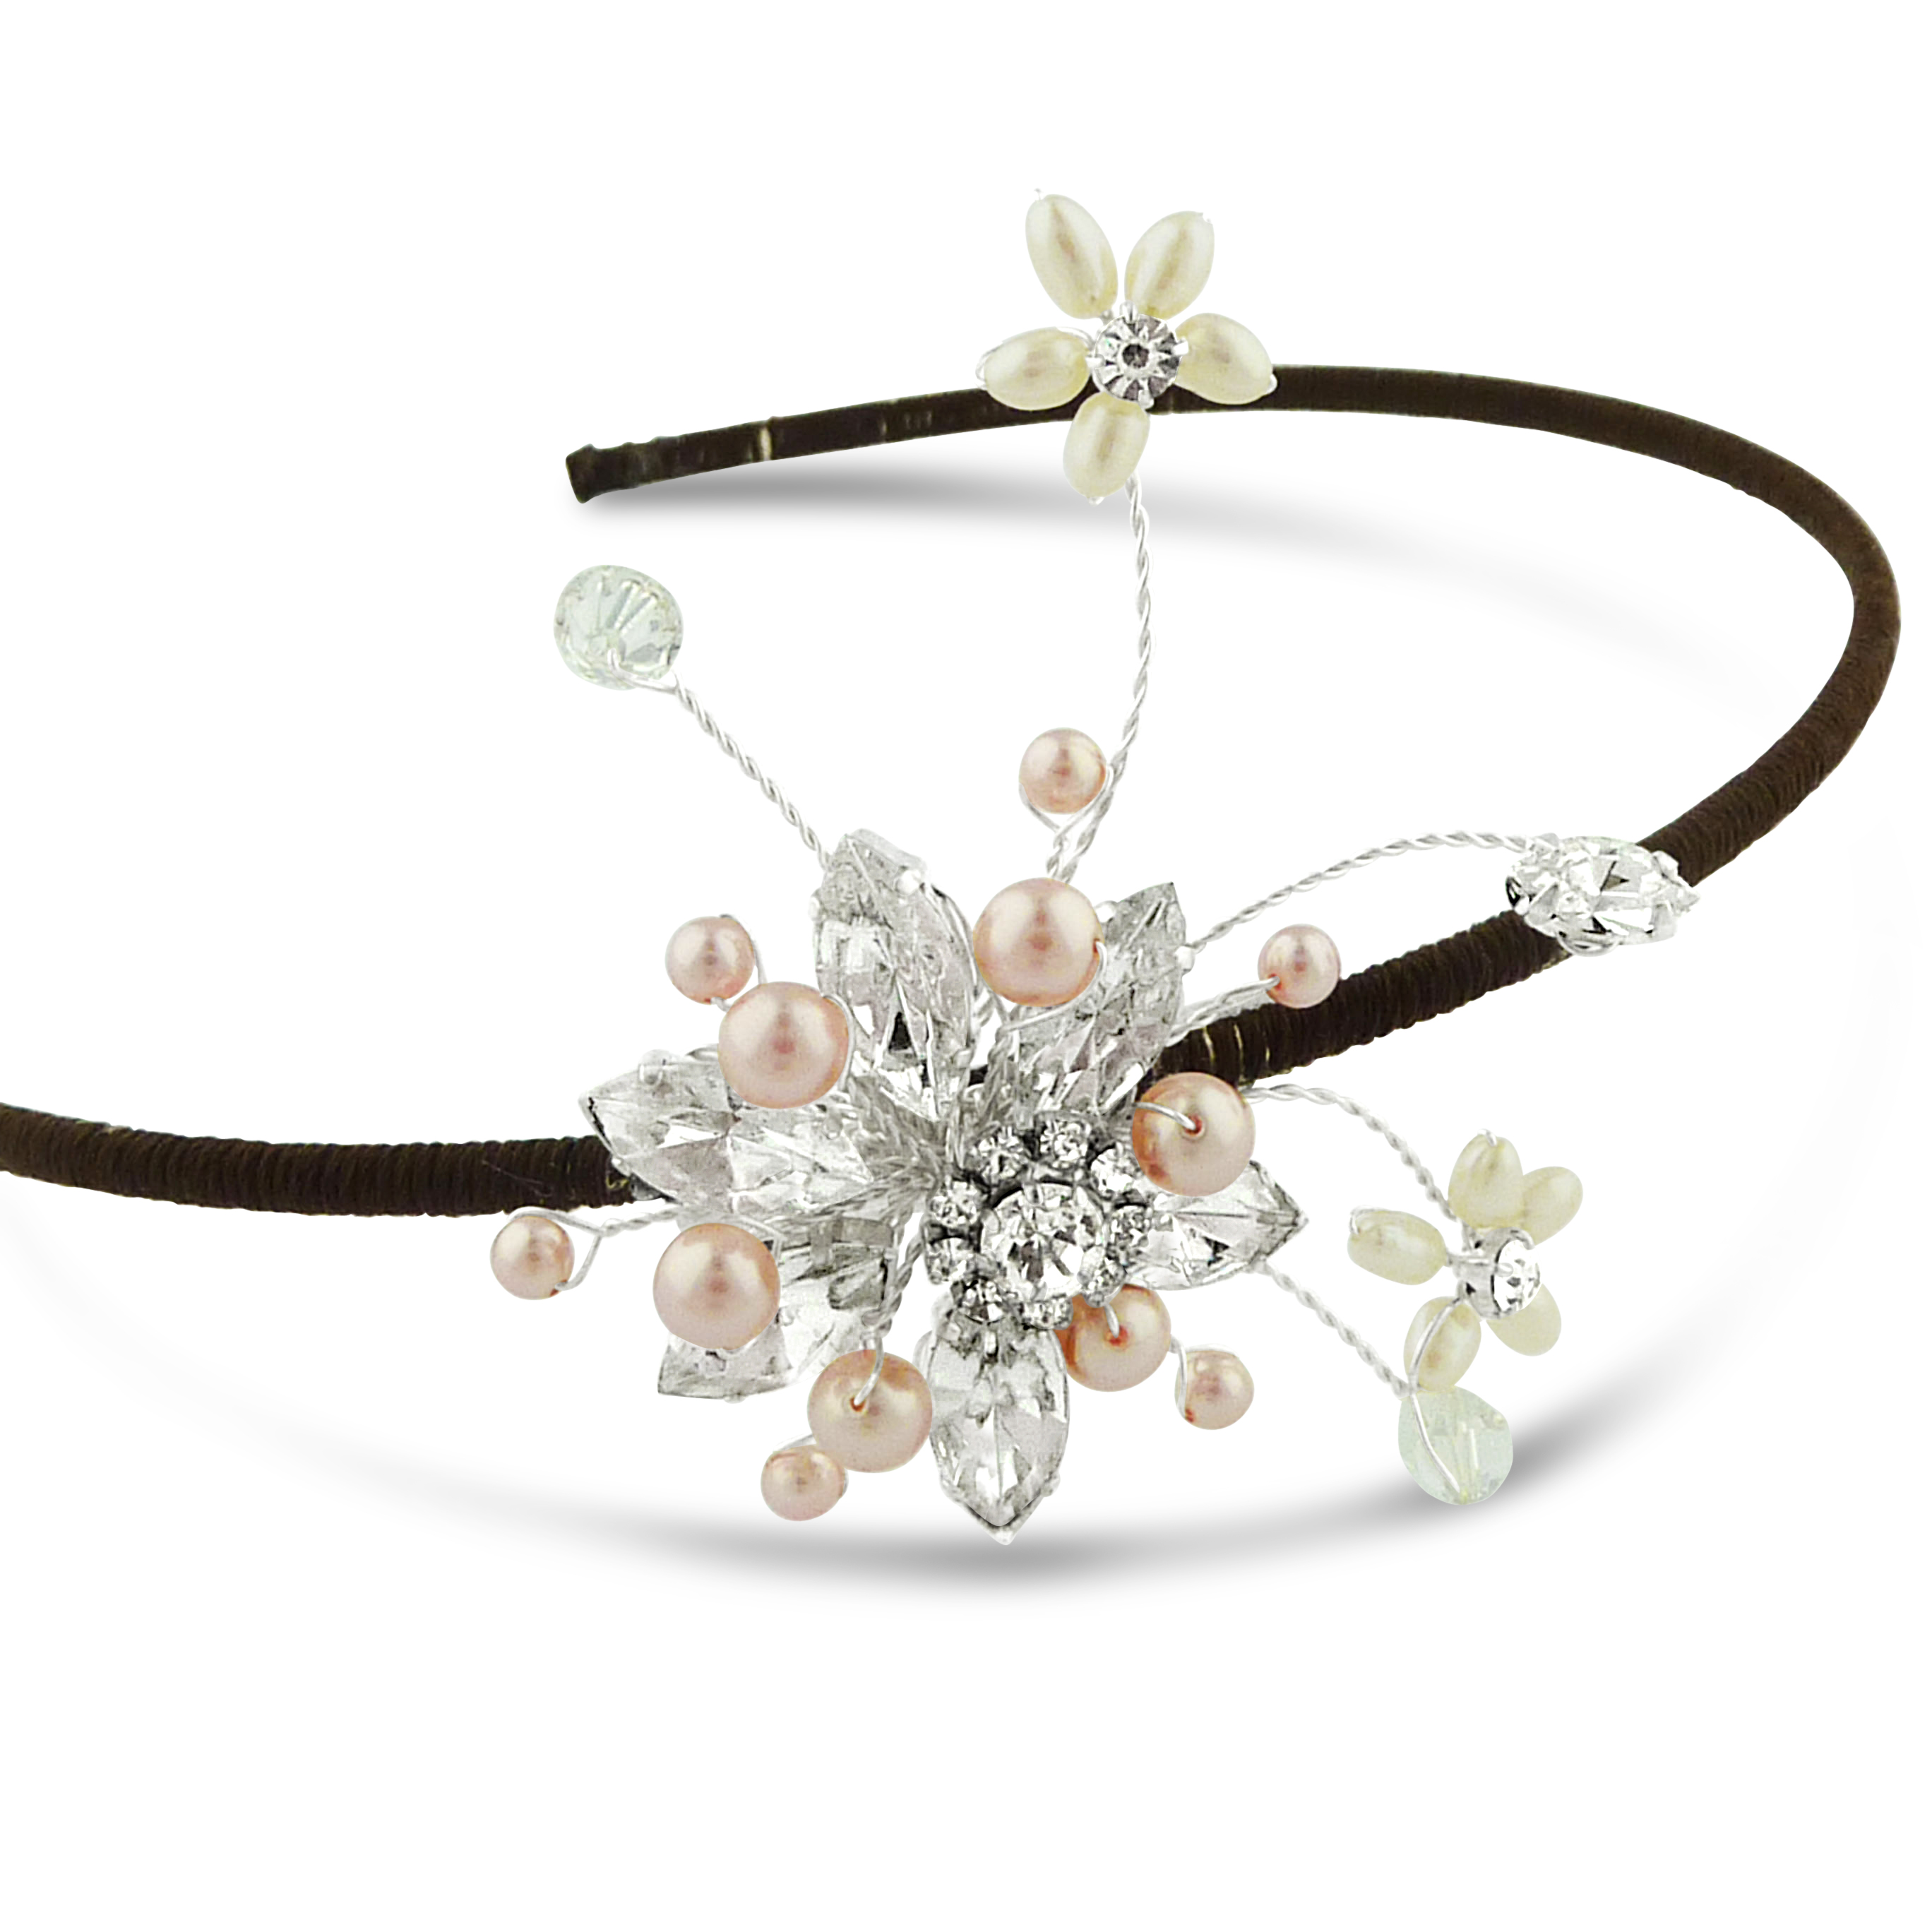 A simple bridesmaids headband with a crystal flower and pink pearls